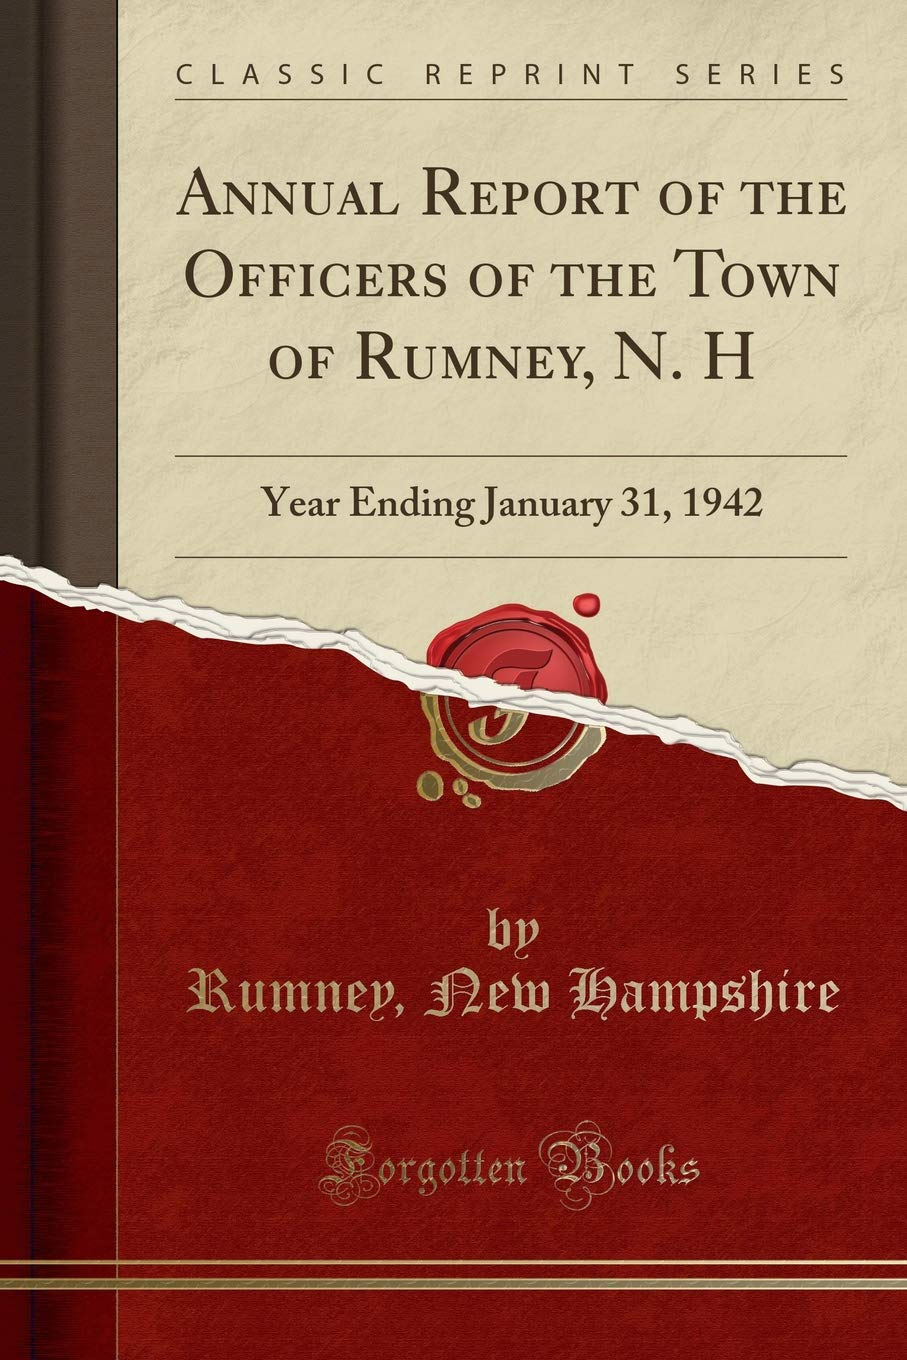 Read Online Annual Report of the Officers of the Town of Rumney, N. H: Year Ending January 31, 1942 (Classic Reprint) PDF